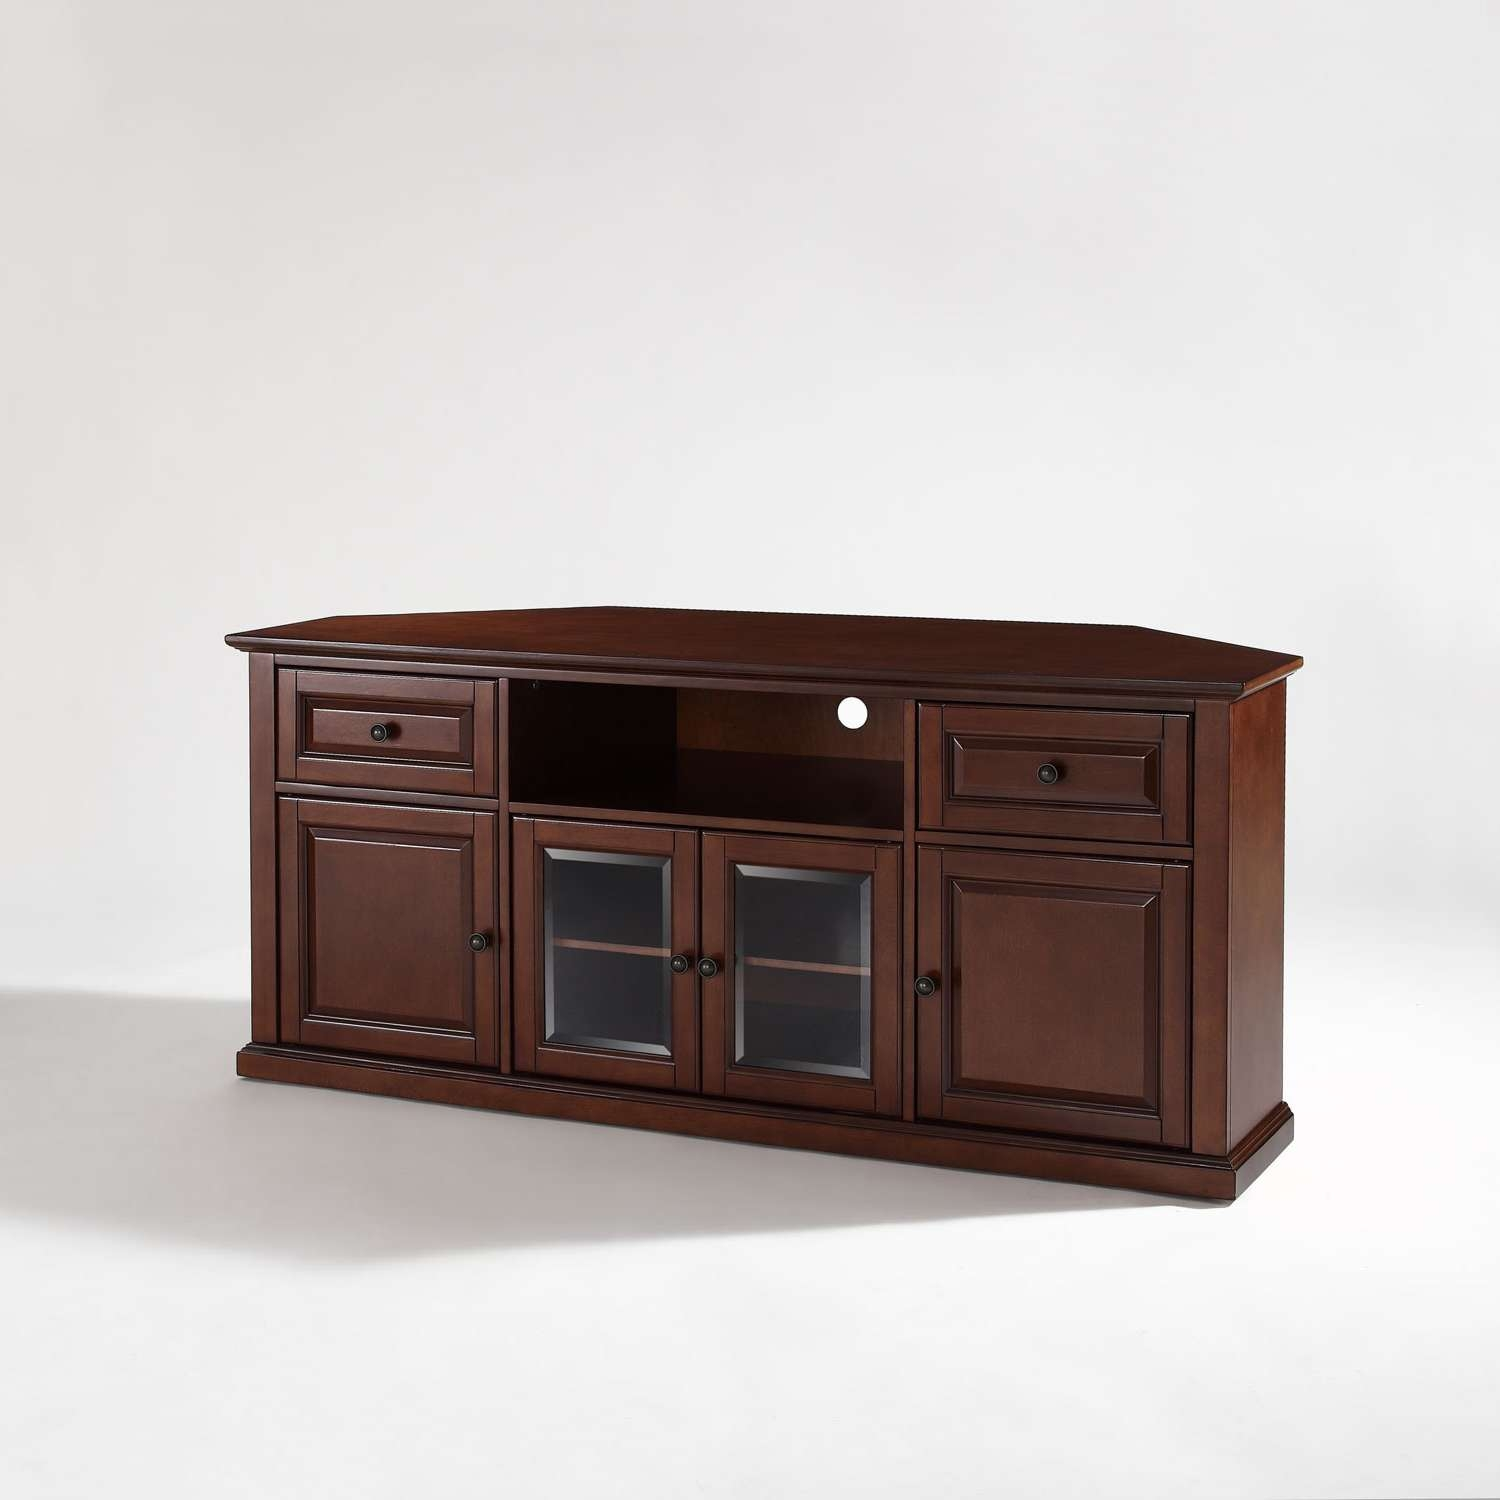 Tv Stands & Cabinets On Sale | Bellacor With Regard To Asian Tv Cabinets (View 10 of 20)